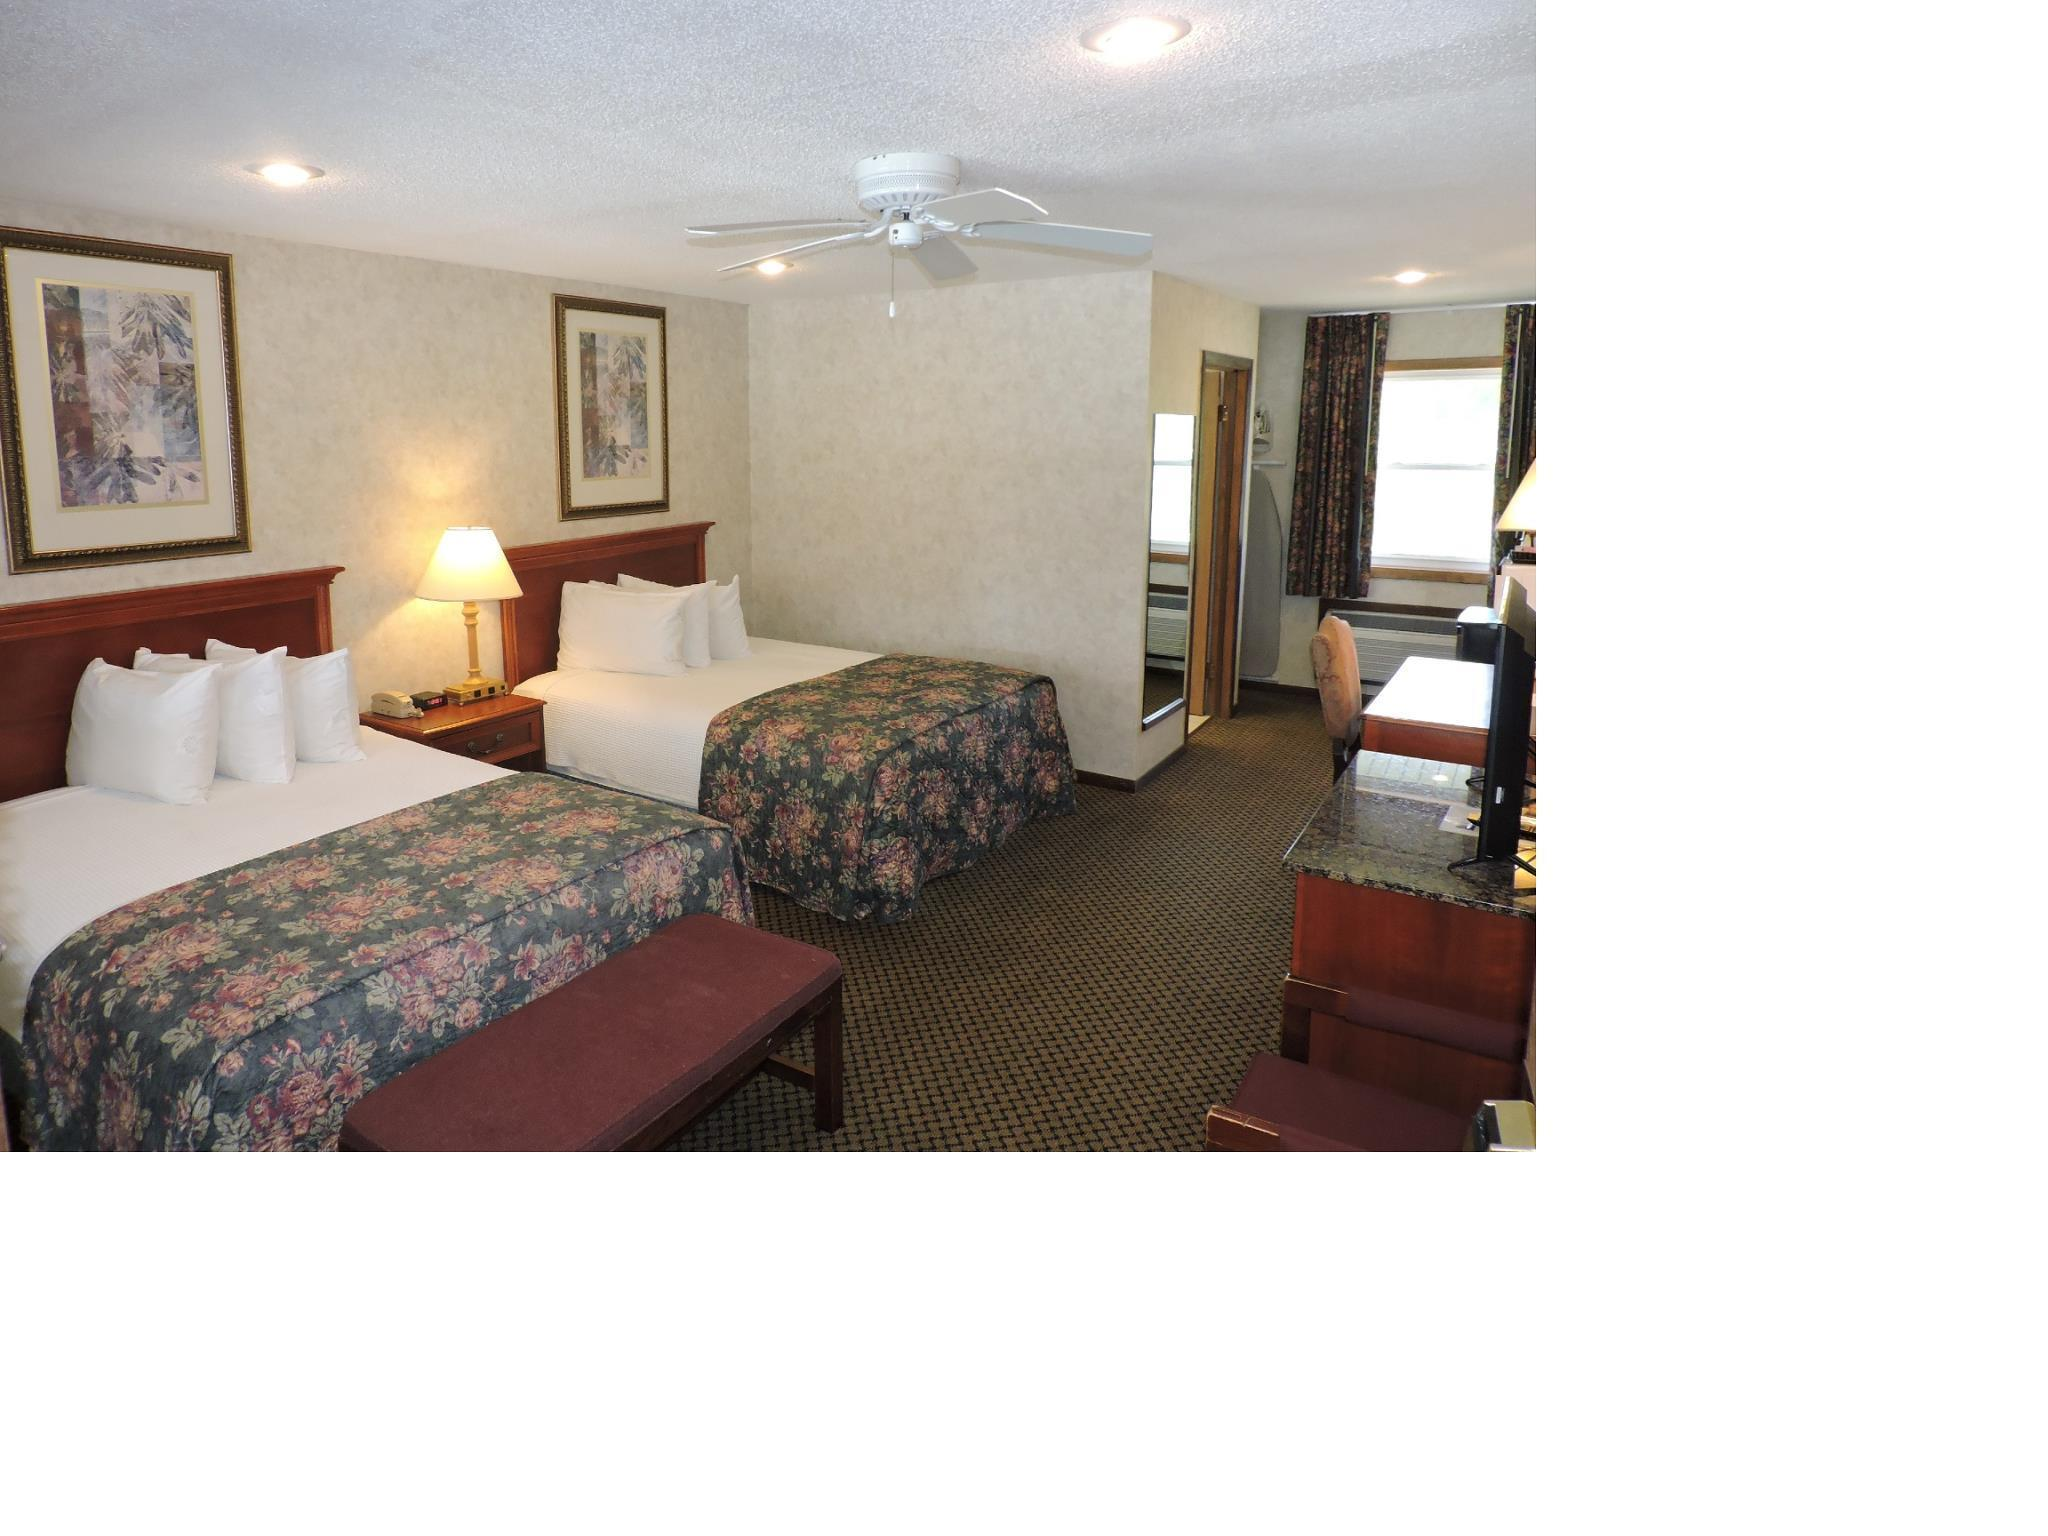 Picture of: Indian Hills Inn Rv Park Albia United States Photos Room Rates Promotions